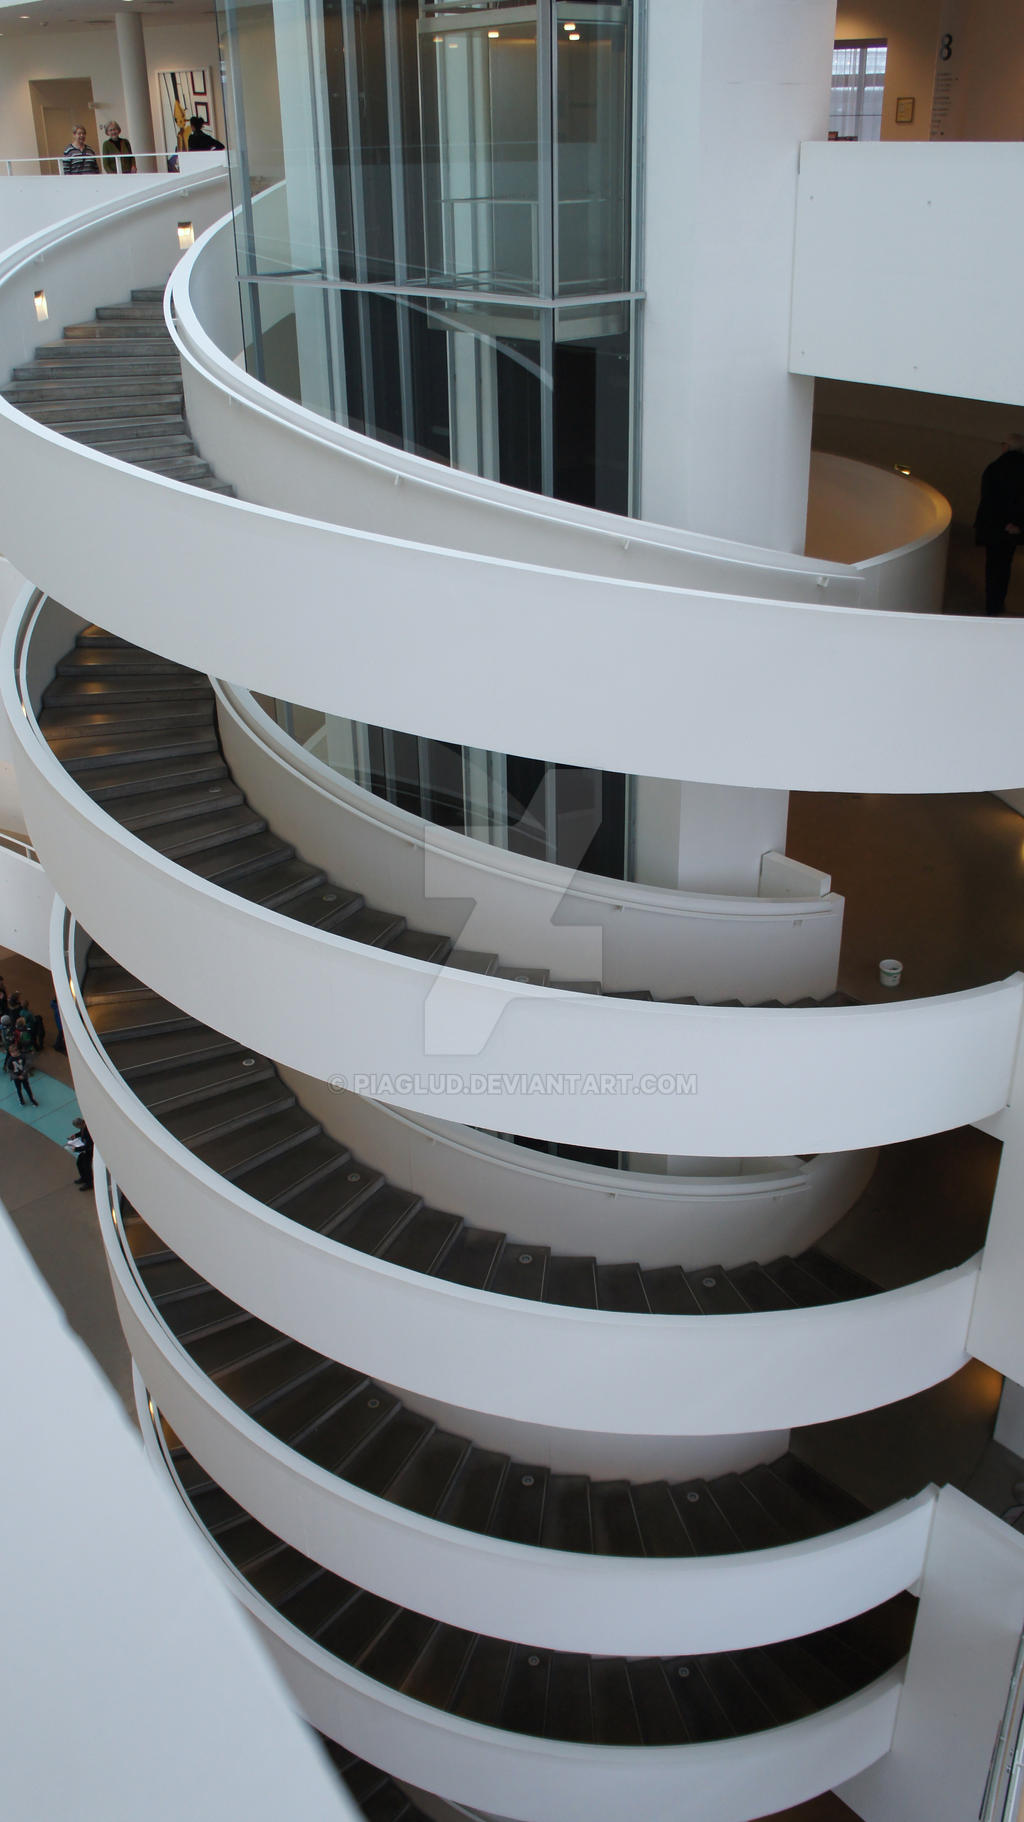 circular staircase by piaglud